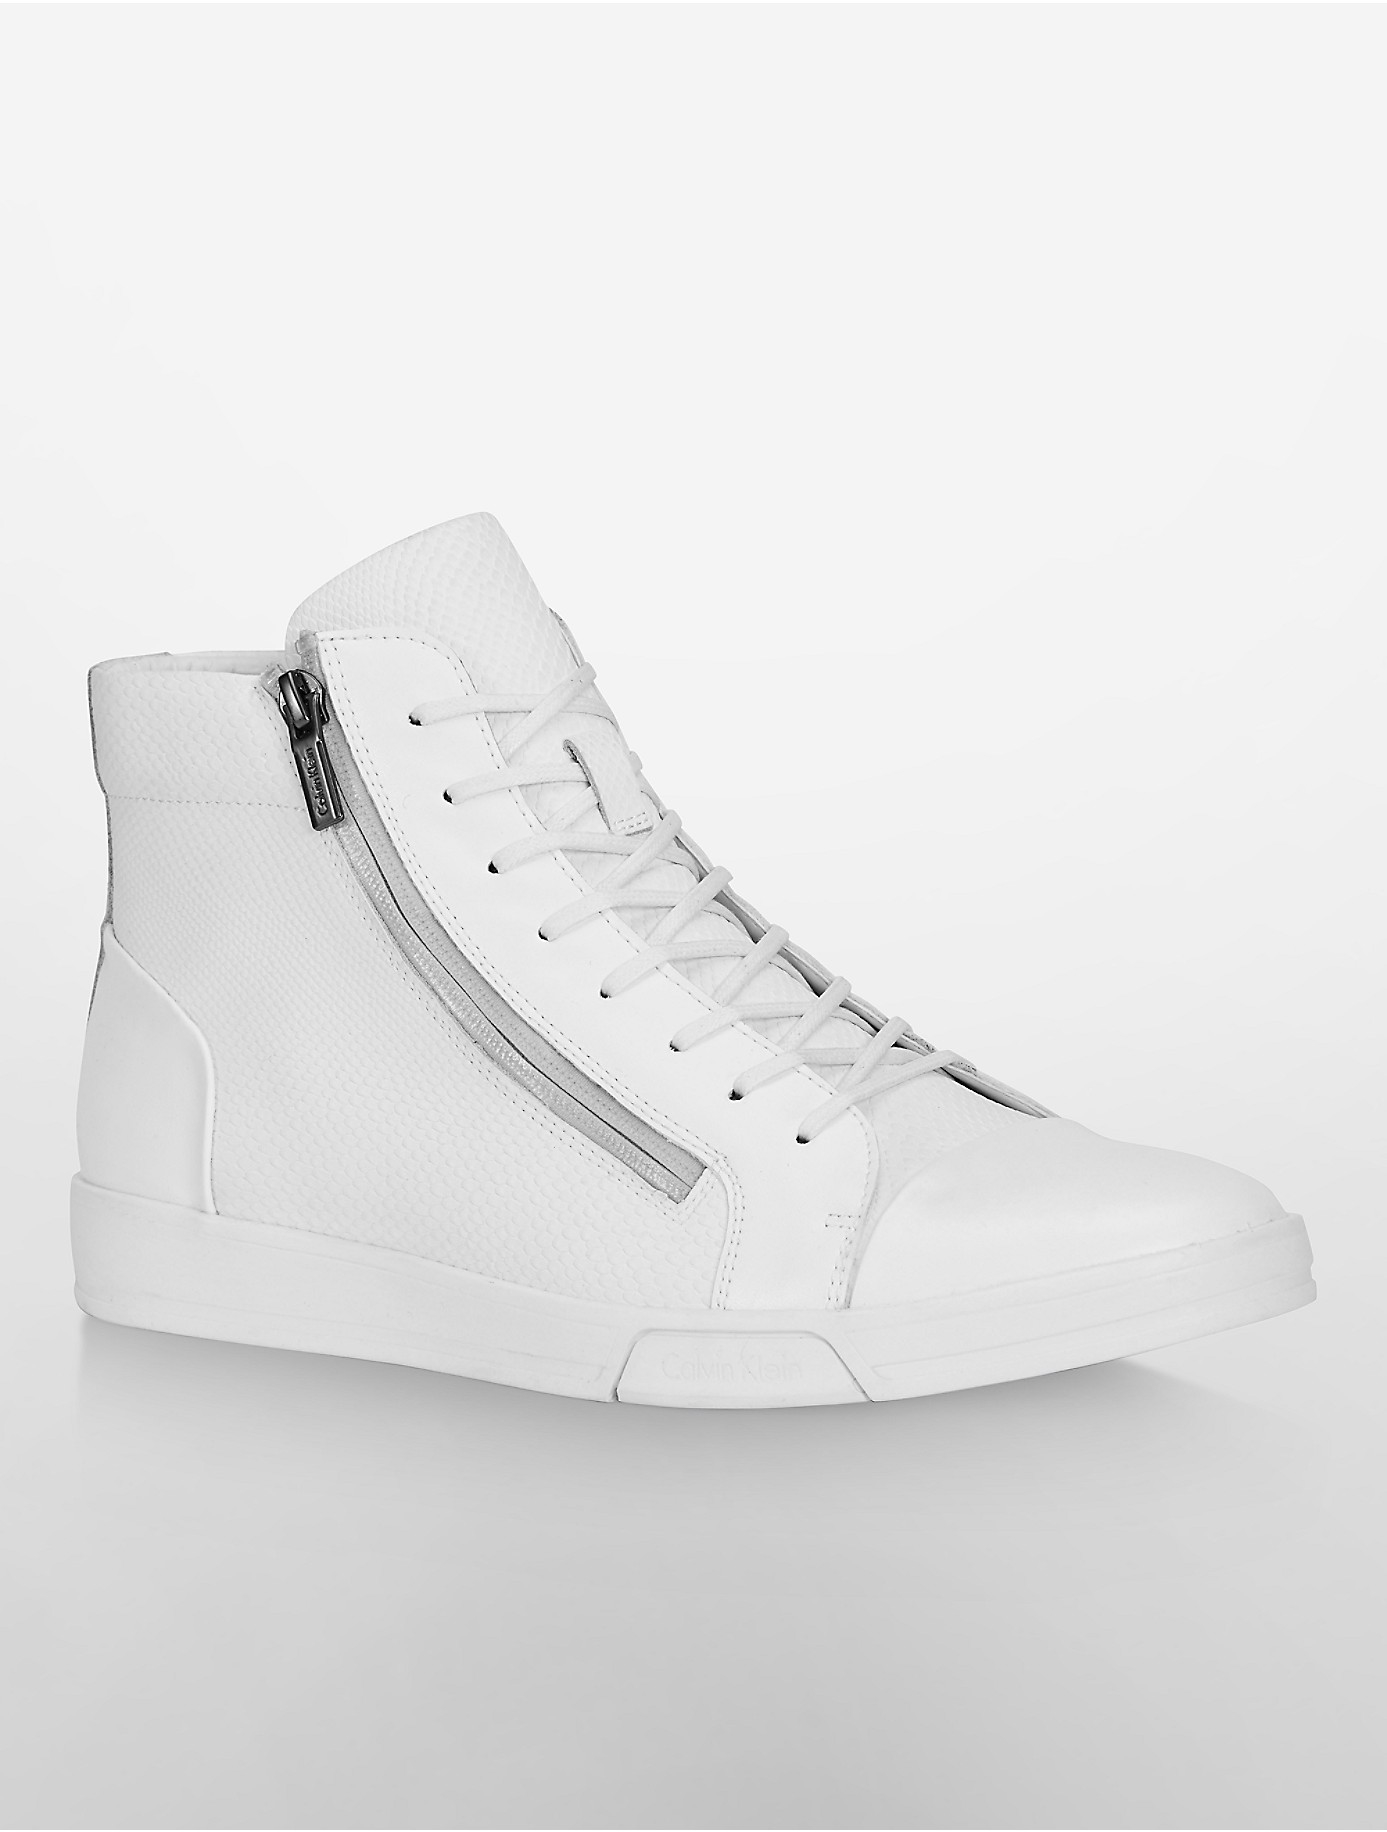 Calvin Klein Hi top sneakers 5tH3FGoq